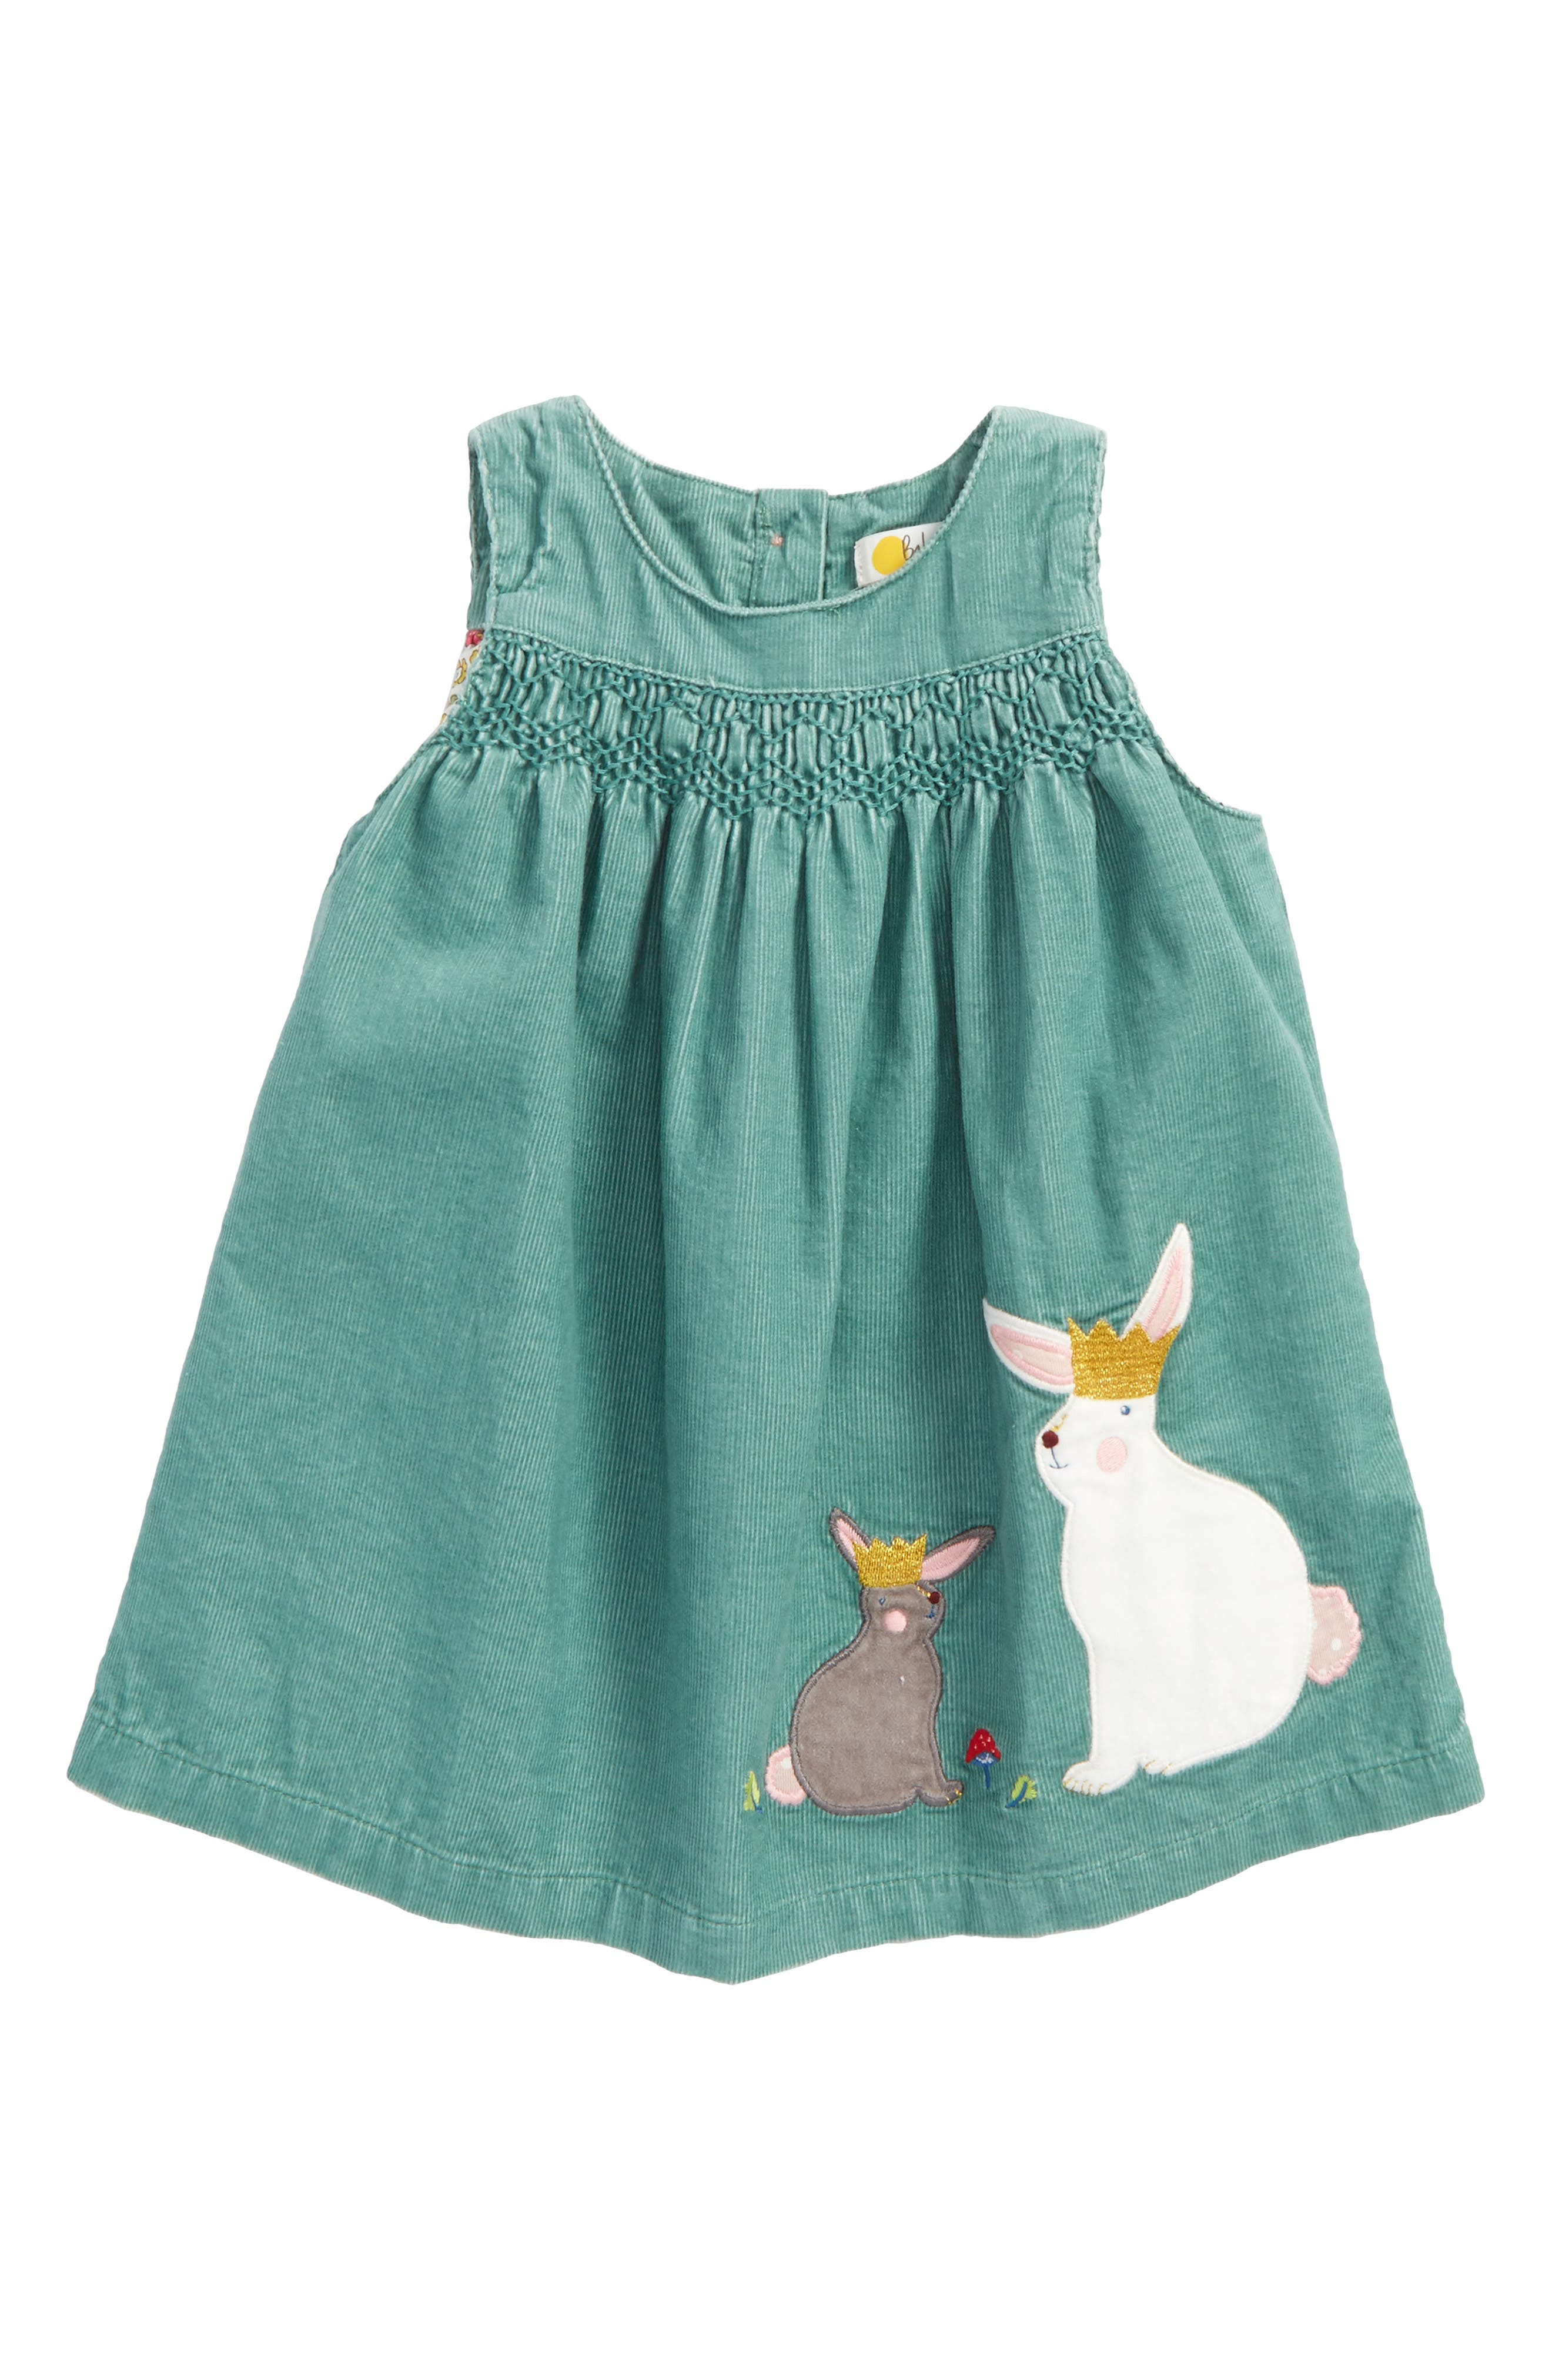 Main Image - Mini Boden Fairy Tale Appliqué Corduroy Pinafore (Baby Girls)